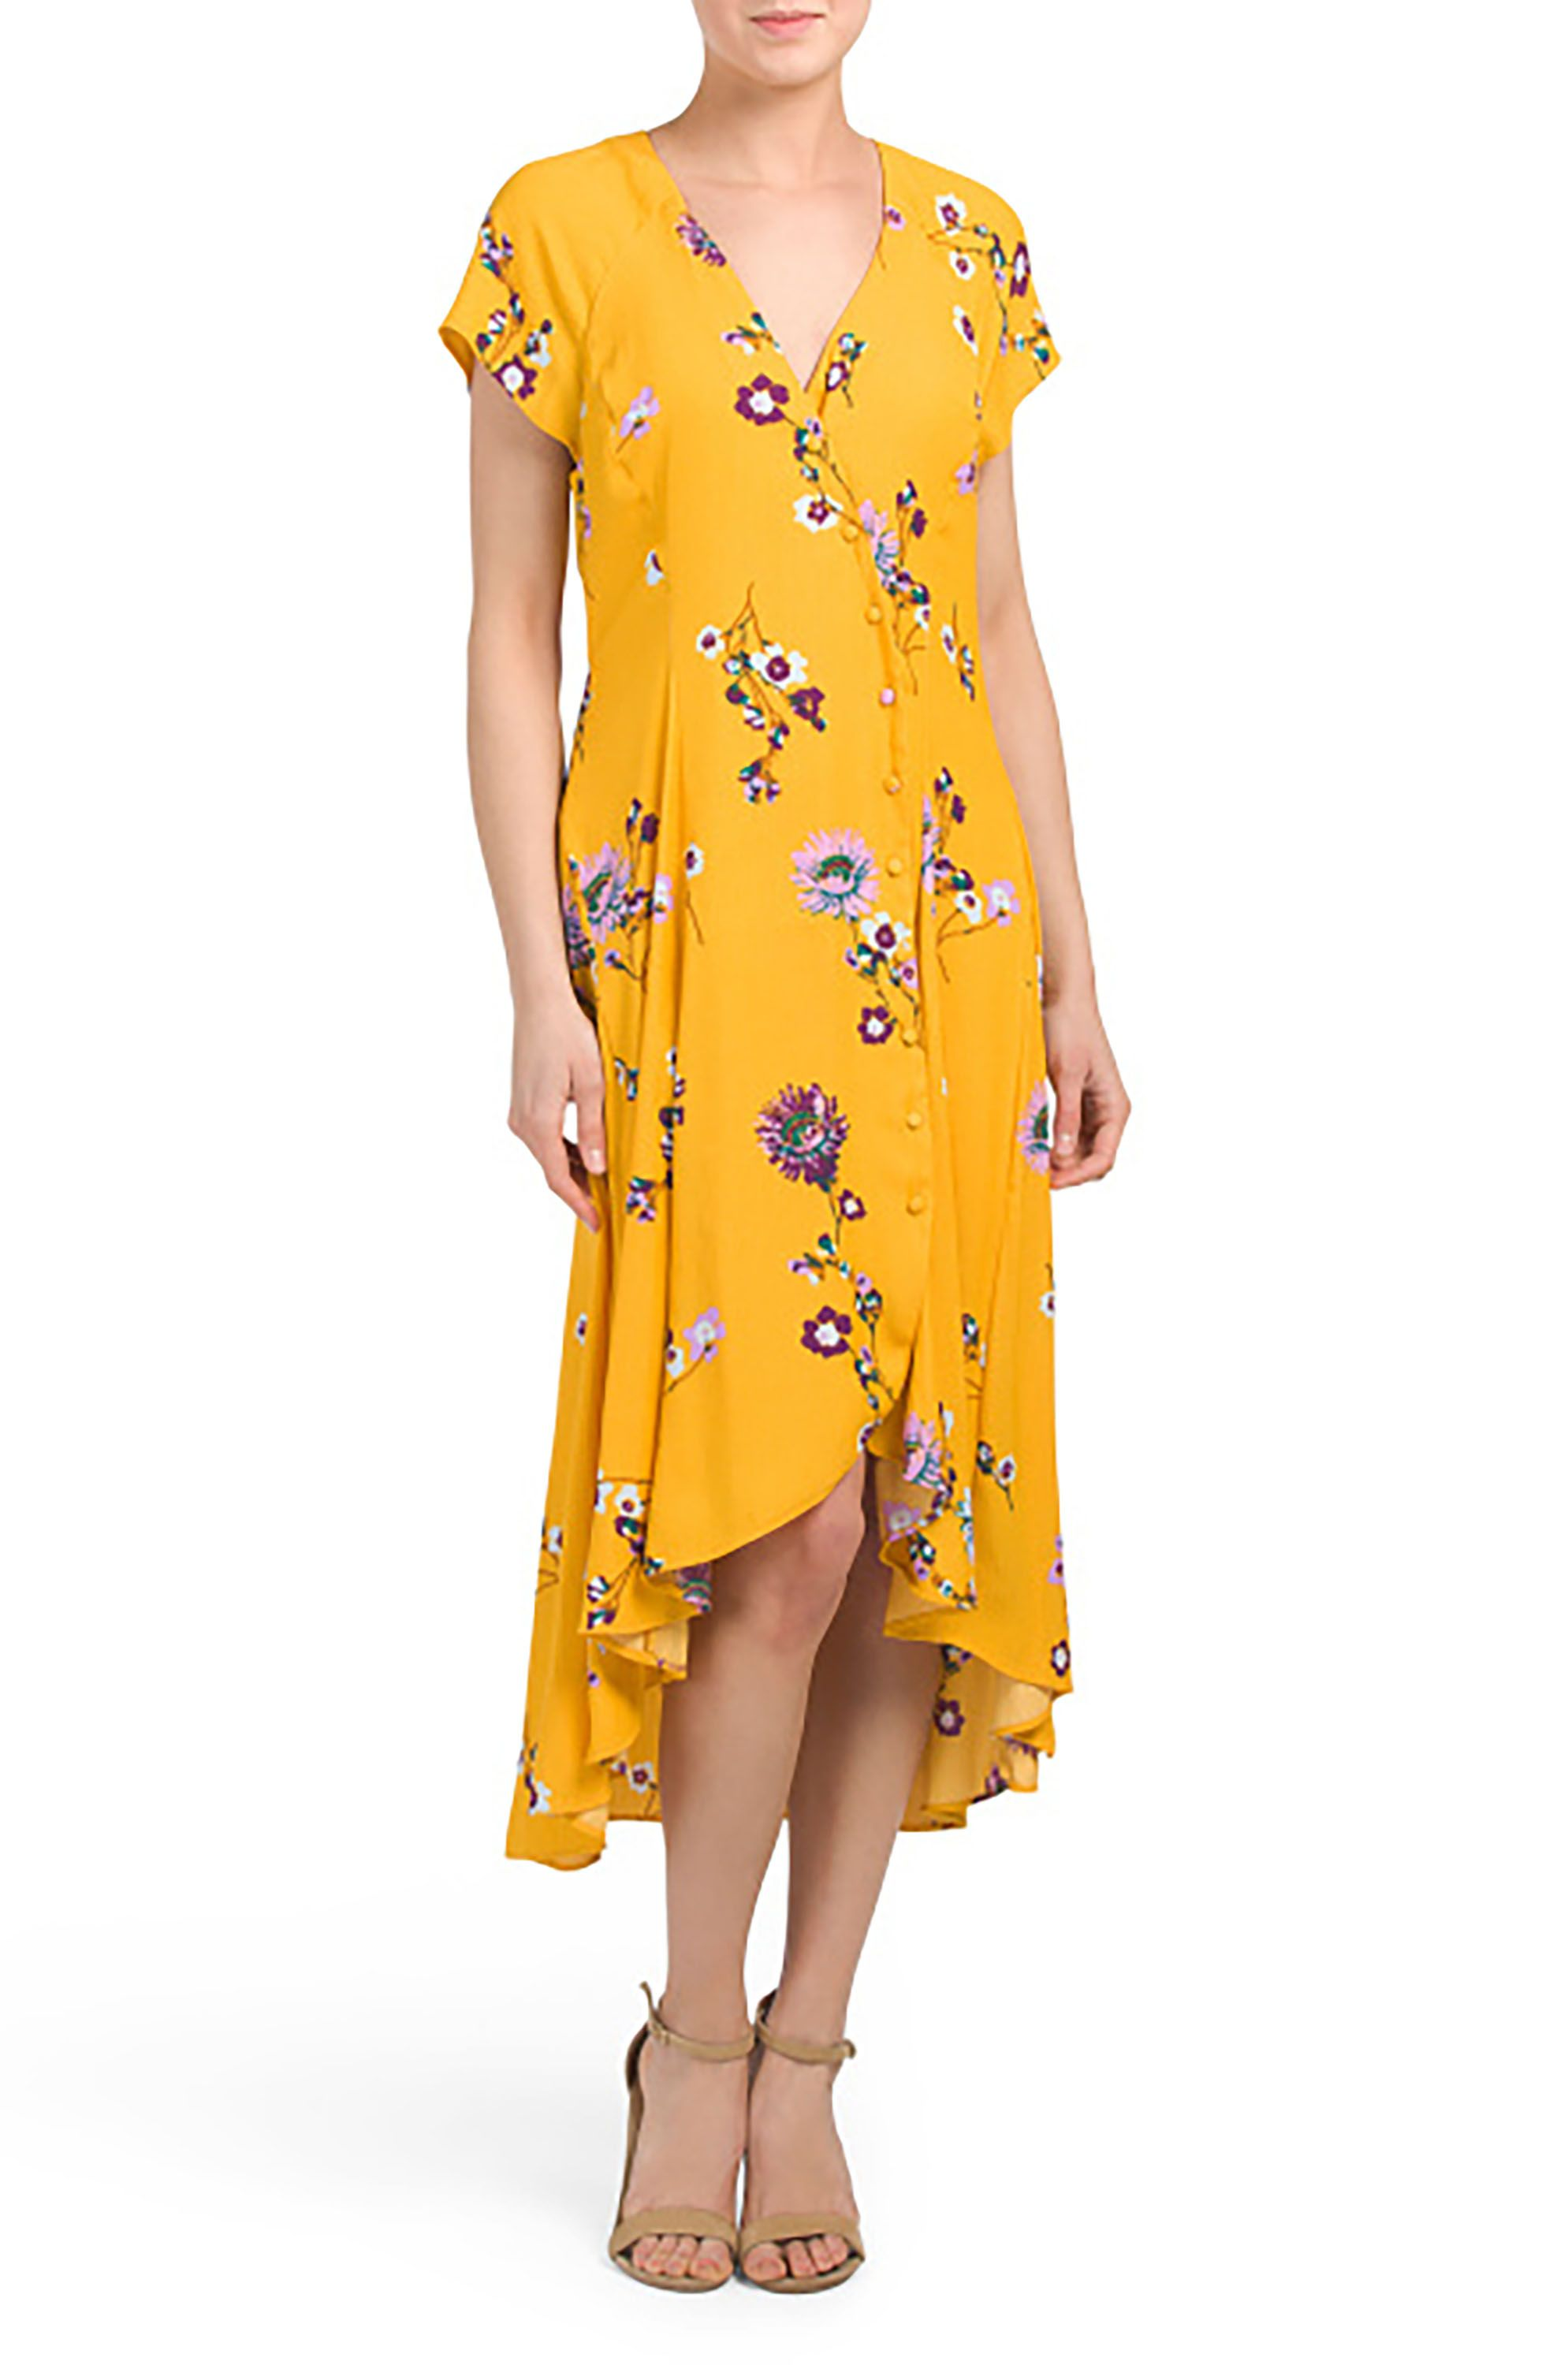 12 Great-Looking Casual Summer Dresses recommendations